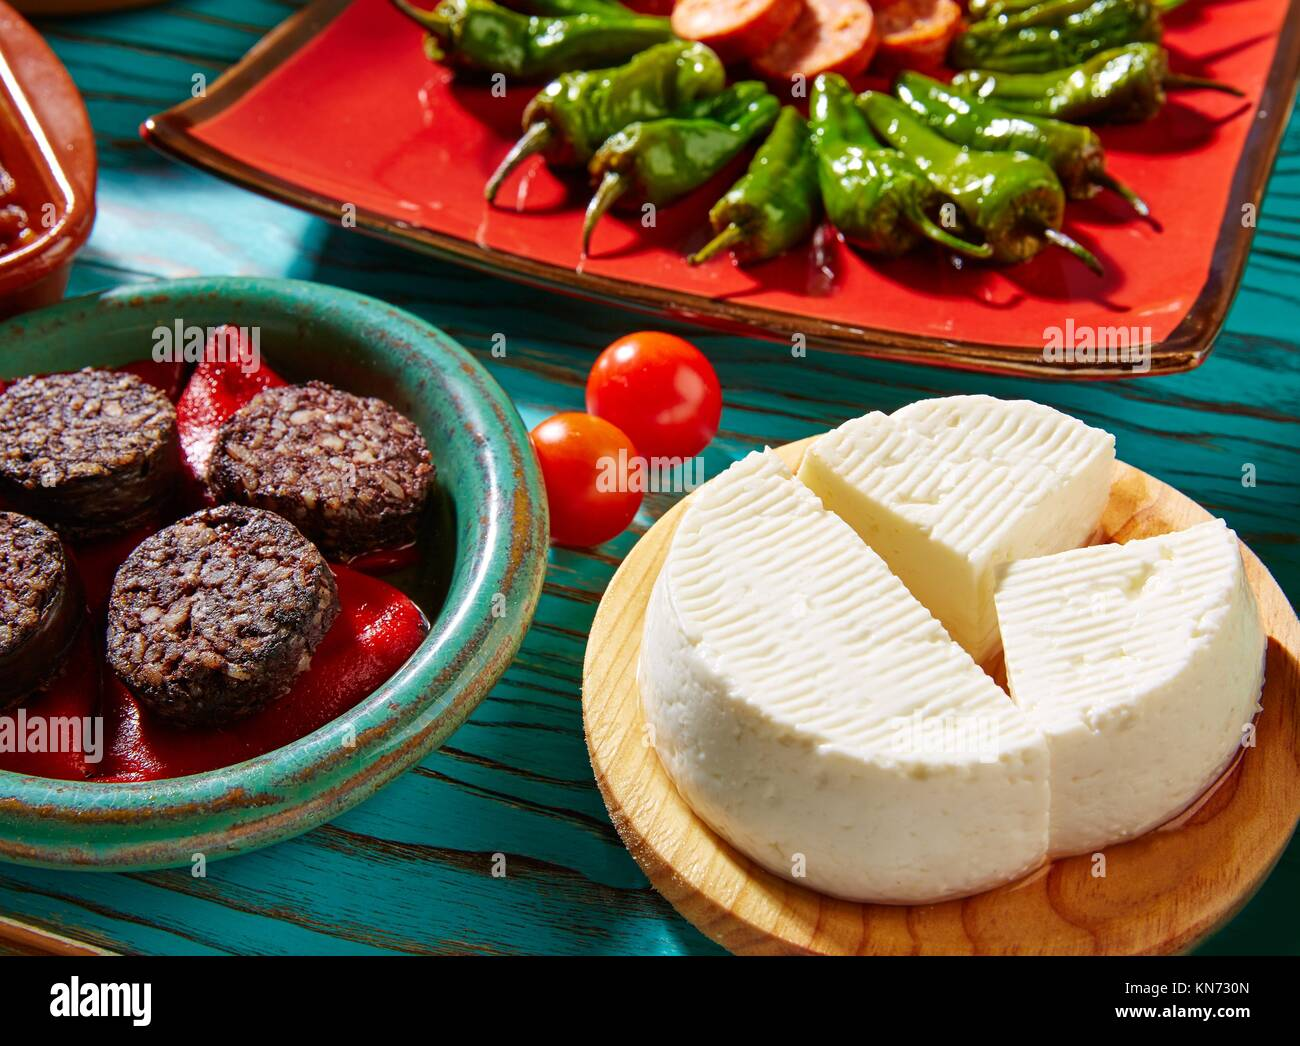 Tapas Morcilla and cheese de Burgos from Spain and padron peppers. - Stock Image